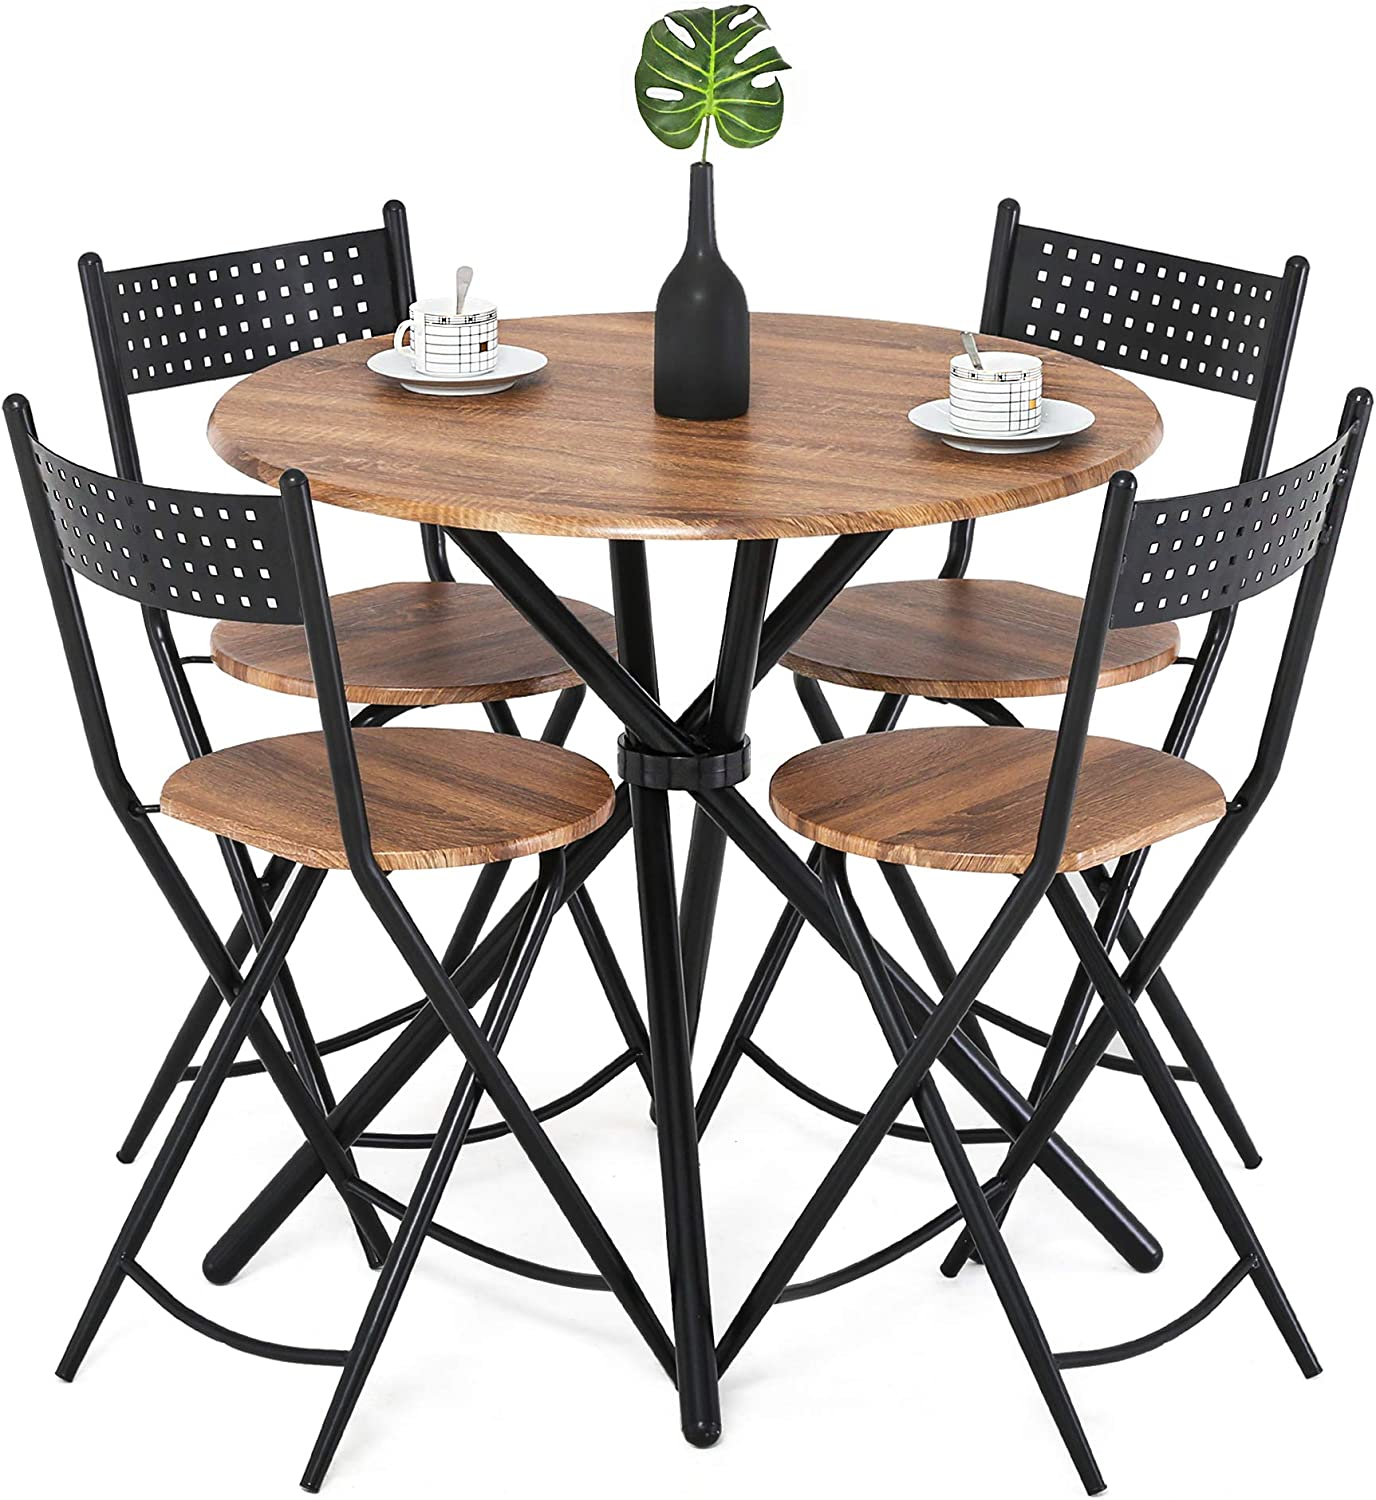 Homury 5pcs Dining Table Set Kitchen Table Kitchen Furniture Round Dining Table with 4 Round Dining Chair Dining Set Wood Coffee Table Set Home Office Table Set